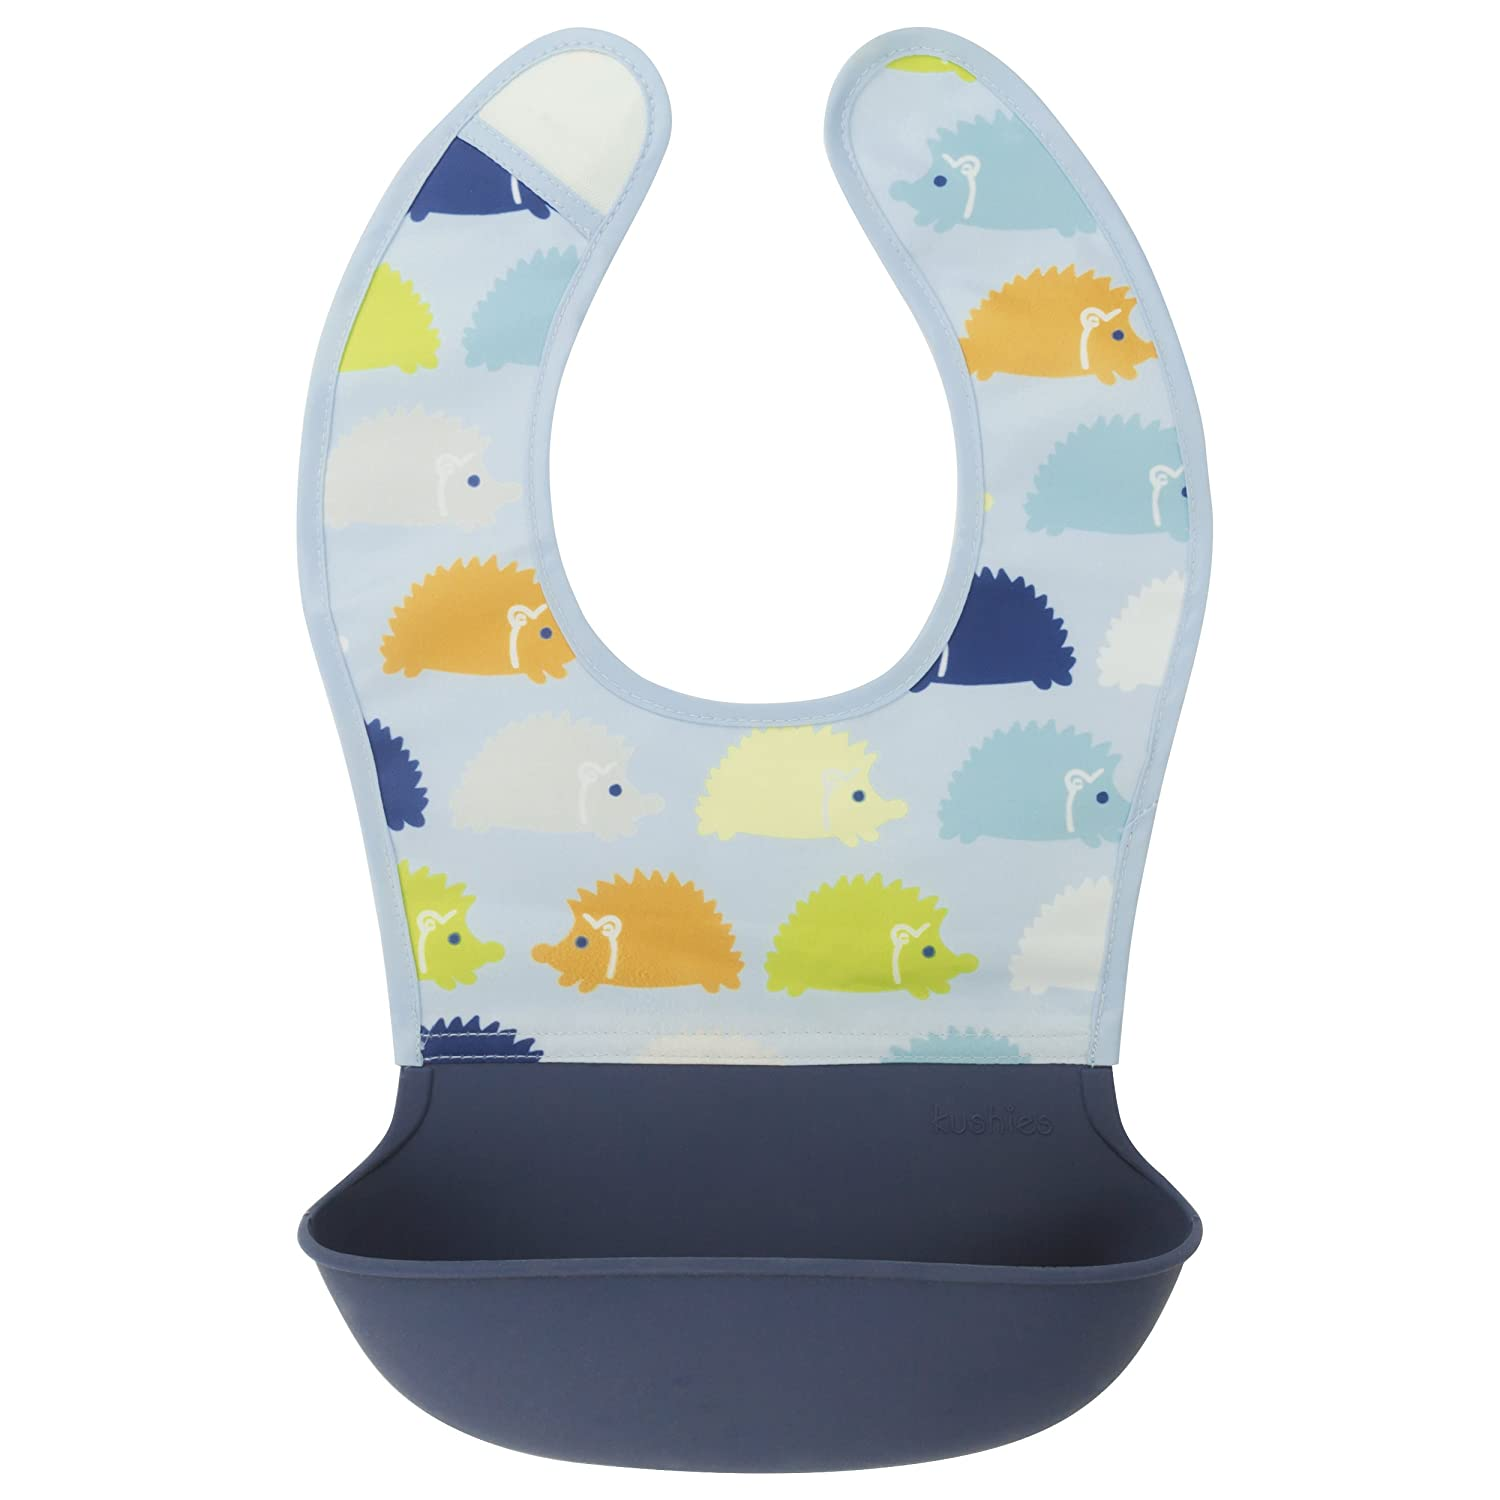 Kushies Silisoft Comfort Fabric Top, Silicone Pocket Waterproof Feeding Bib, Blue Hedgehogs, 6m+ Kushies Baby B305-B02